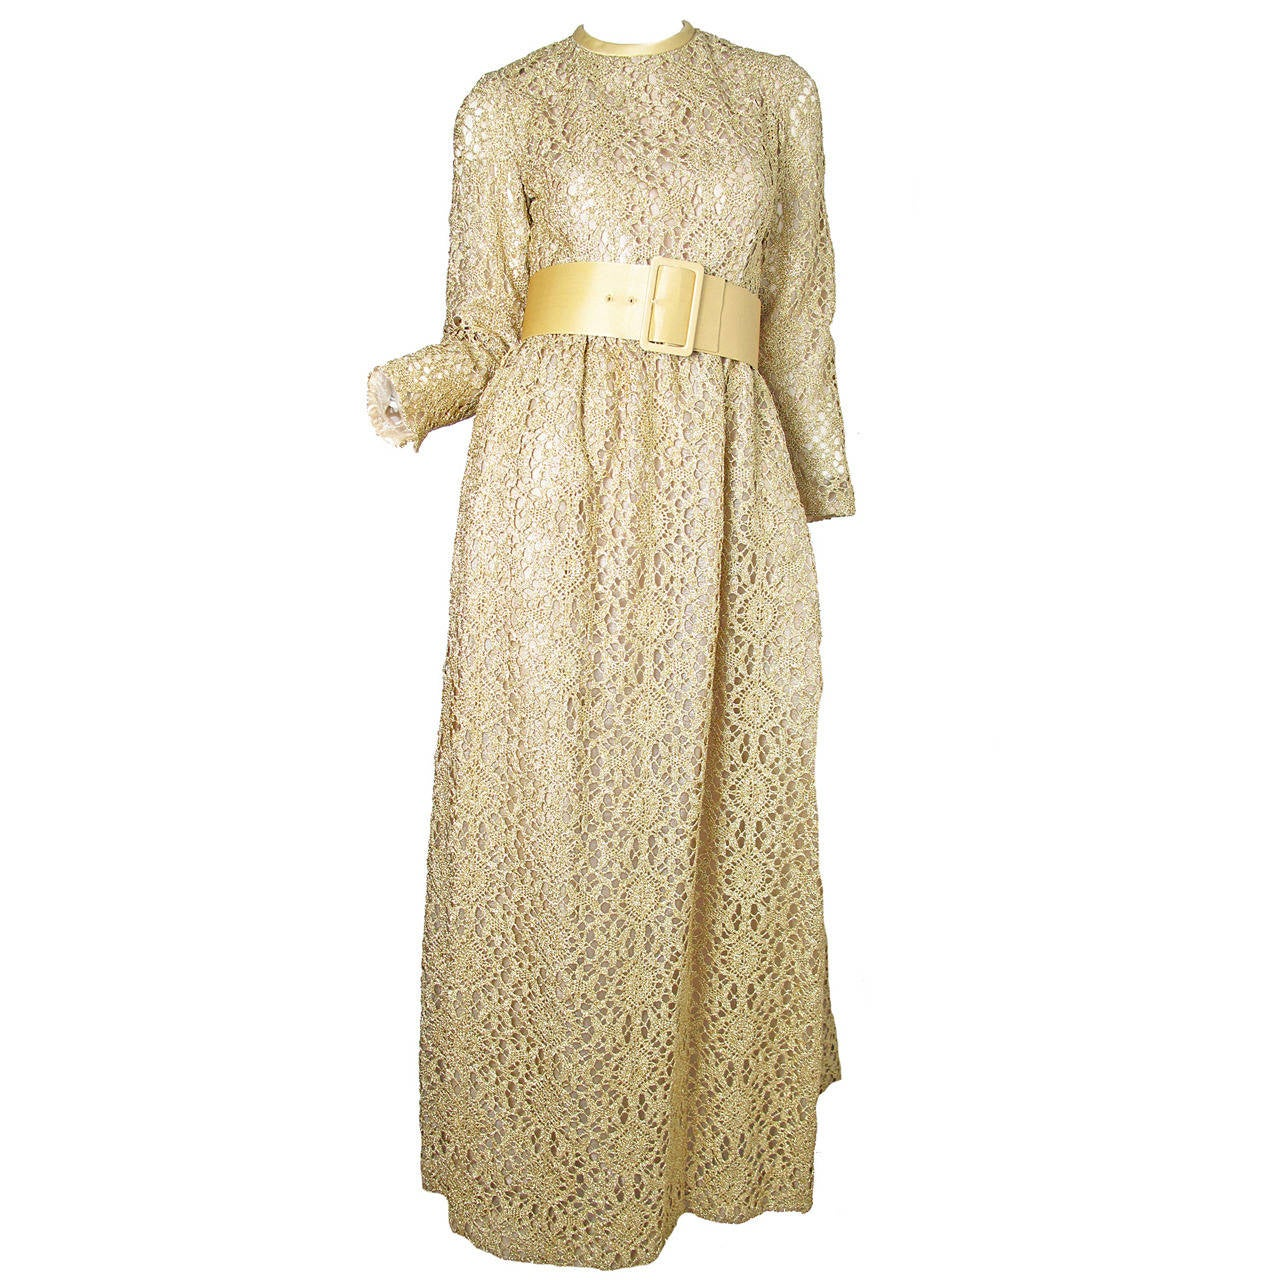 1960s Claudia by George Halley Gold Metallic Lace Gown